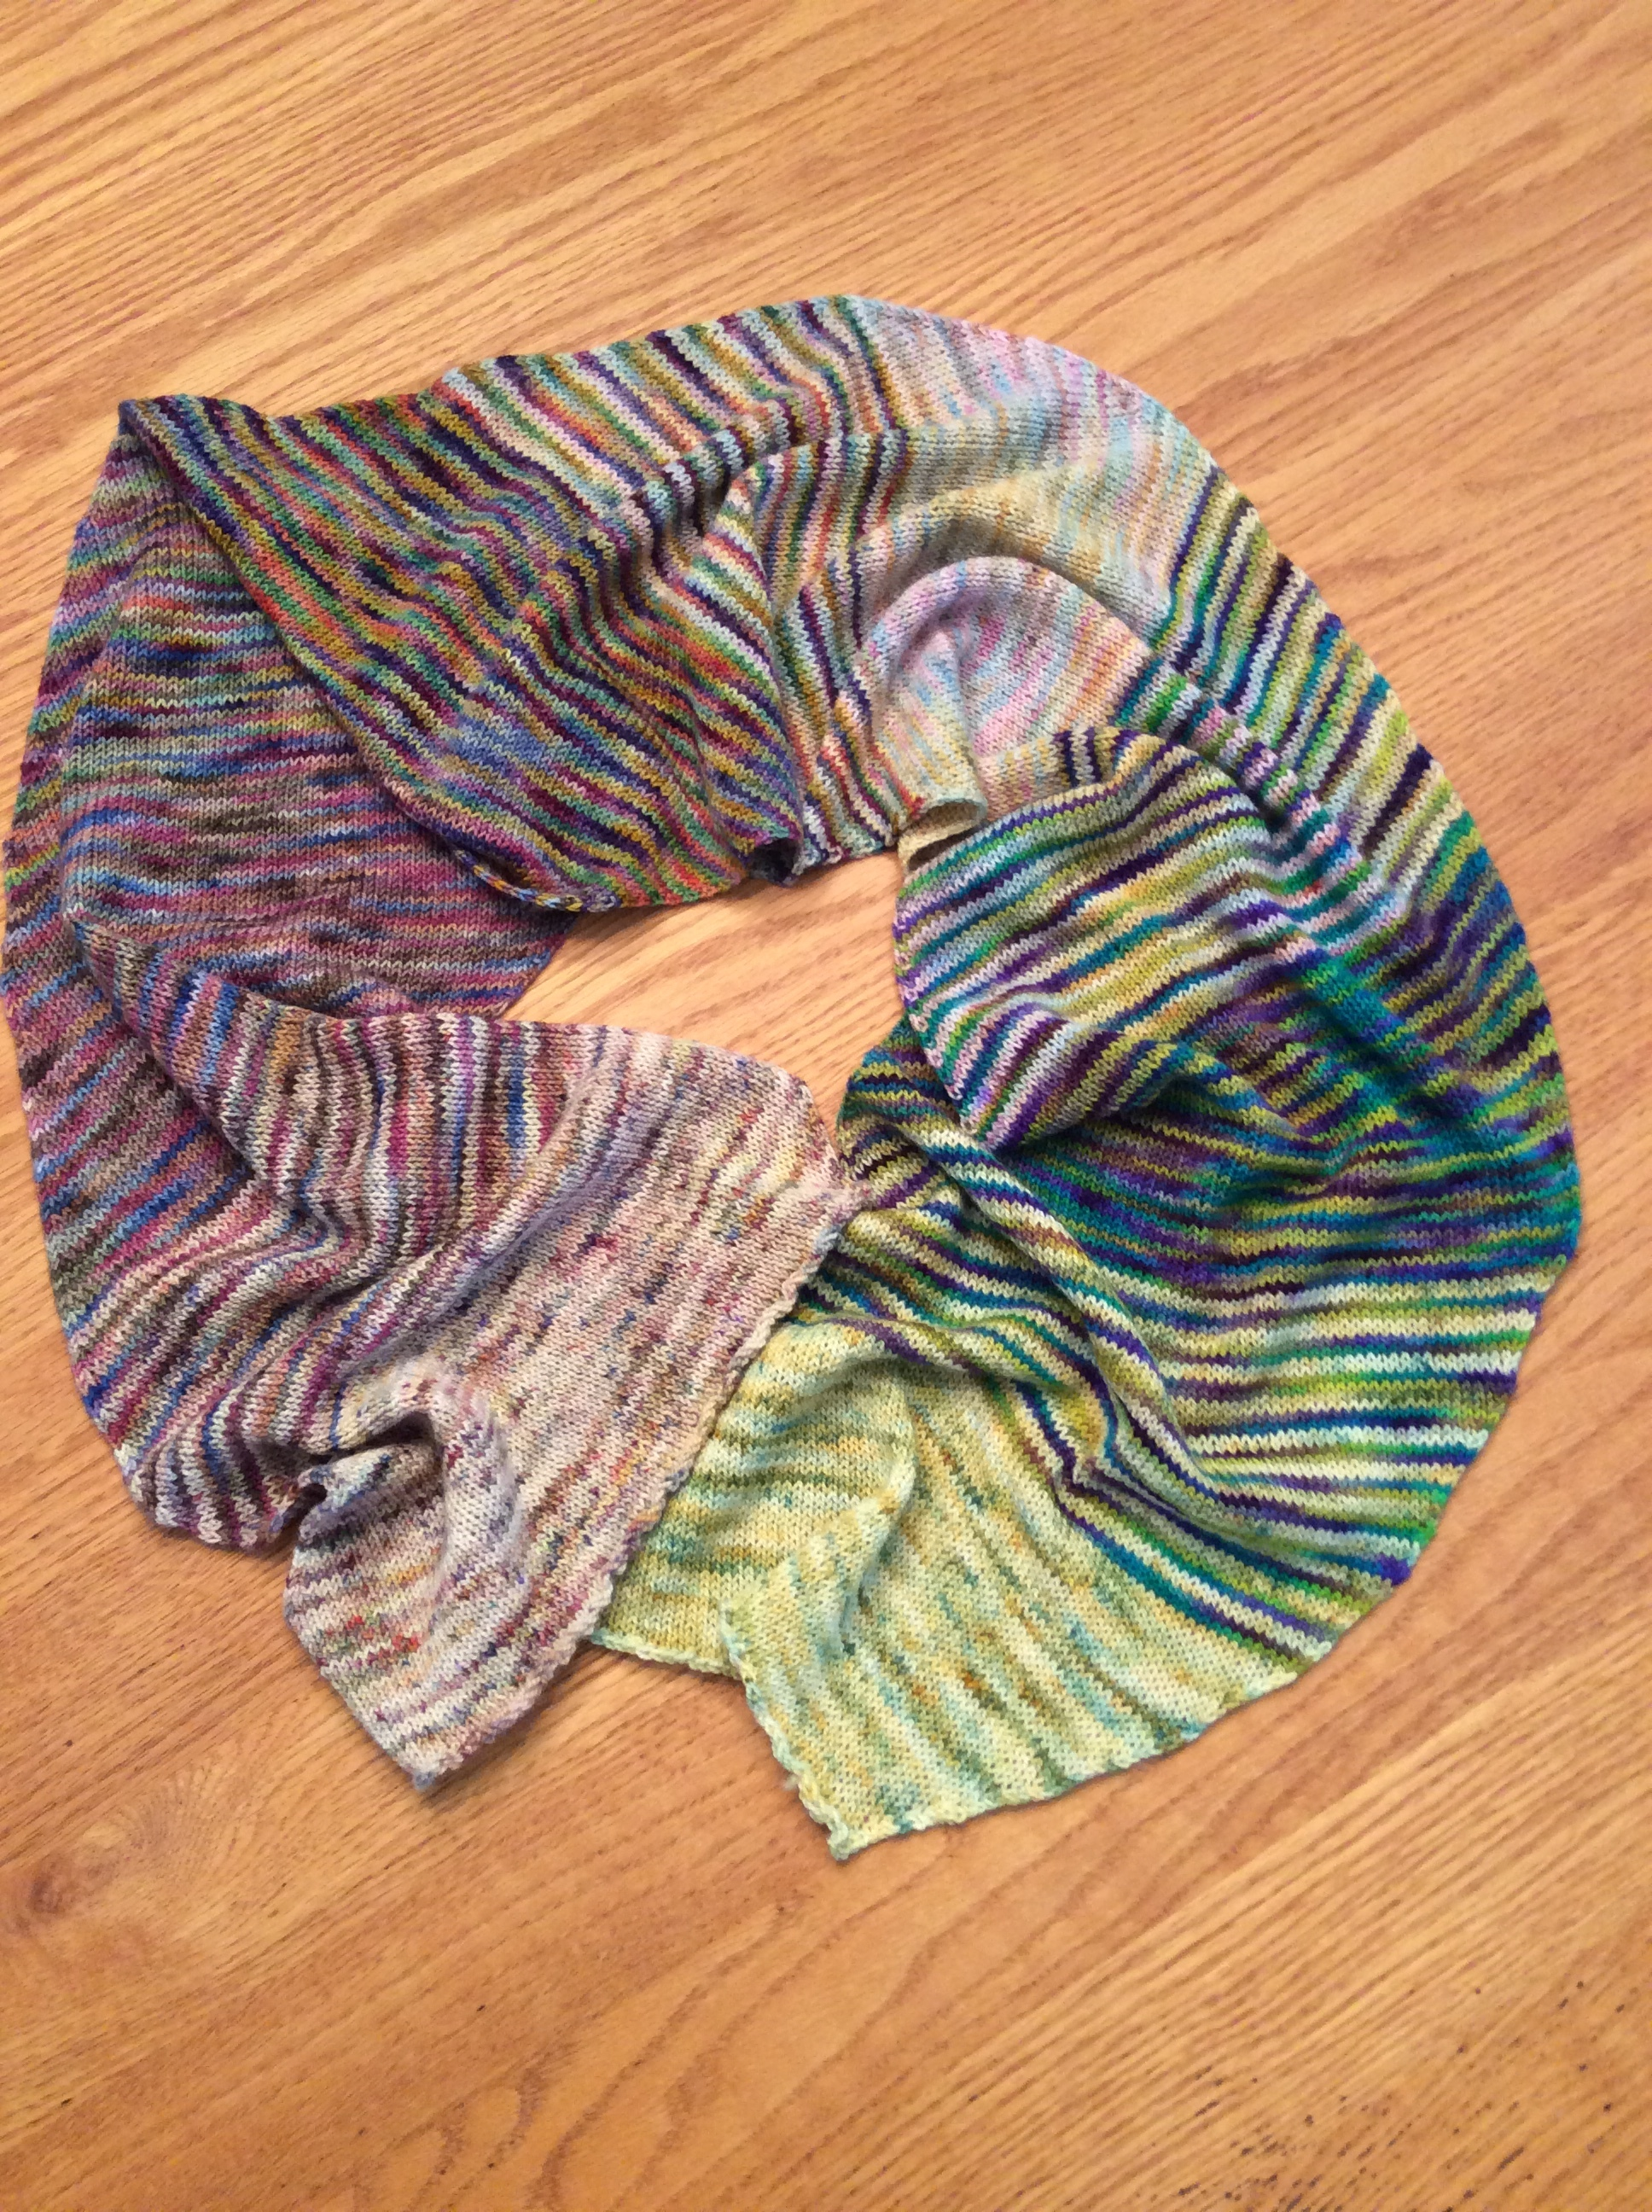 Betsy - Here is my Annalise Shawl made with 5 colors of Koigu (p118/406, p335, p118/137, p105, p819, p509).Easy pattern but tough choosing colors. I have seen it done in other colorways and doubt you can go wrong with anything you select or how you sequence them. As usual with my Koigu items, the compliments just keep coming.